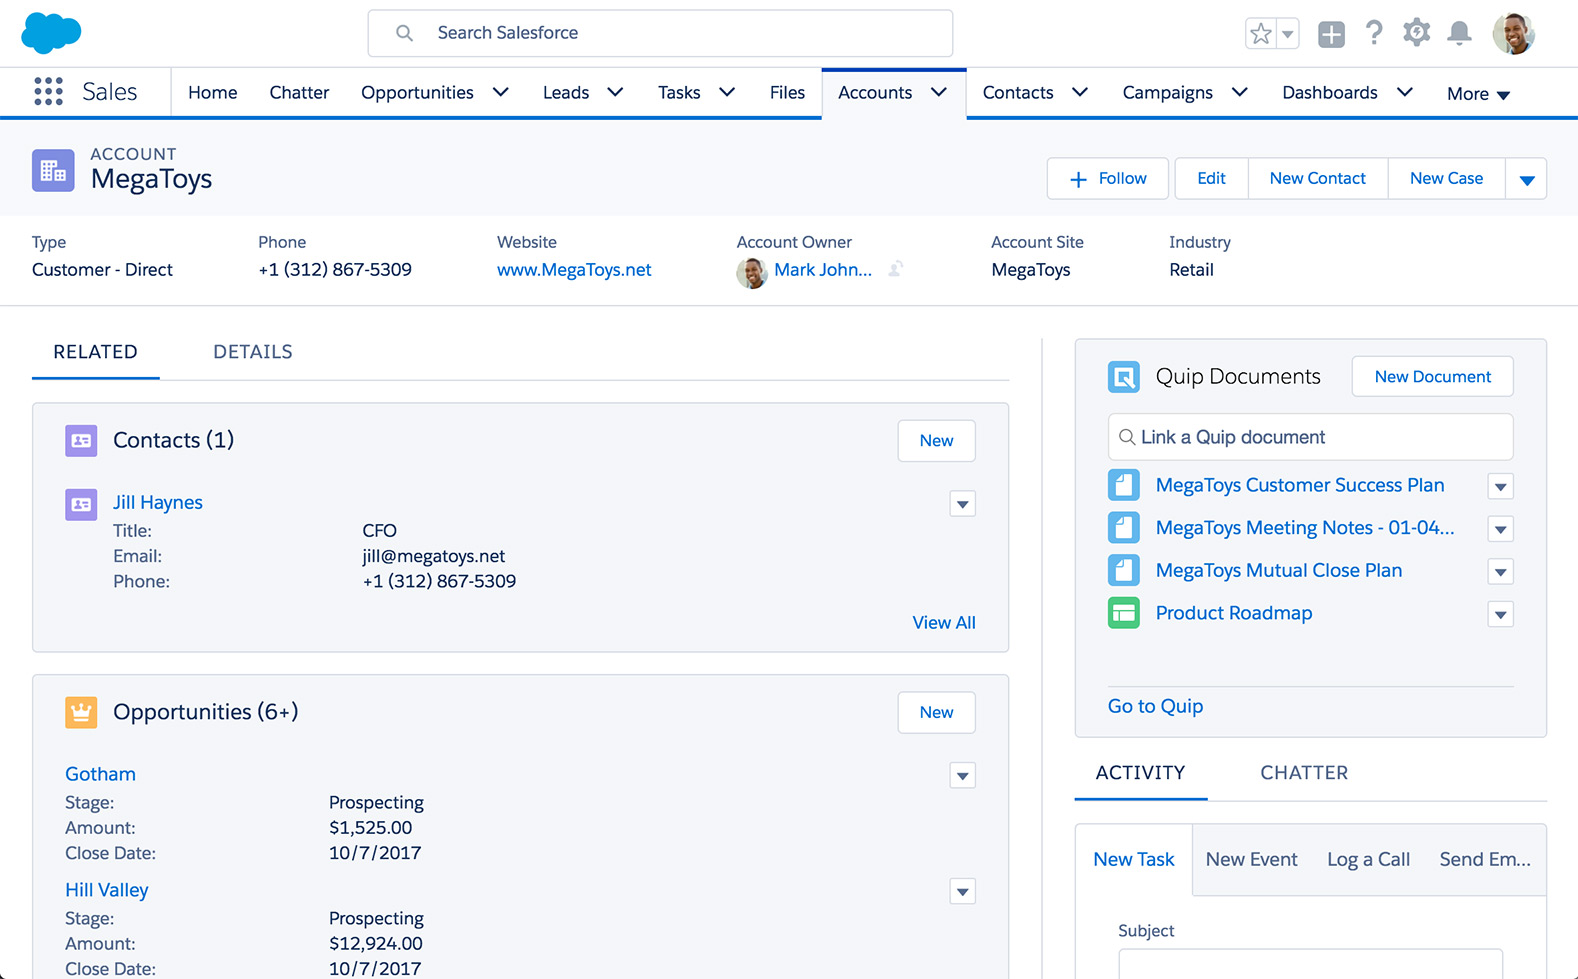 Link and create documents, spreadsheets, and checklists with the Quip component in Salesforce